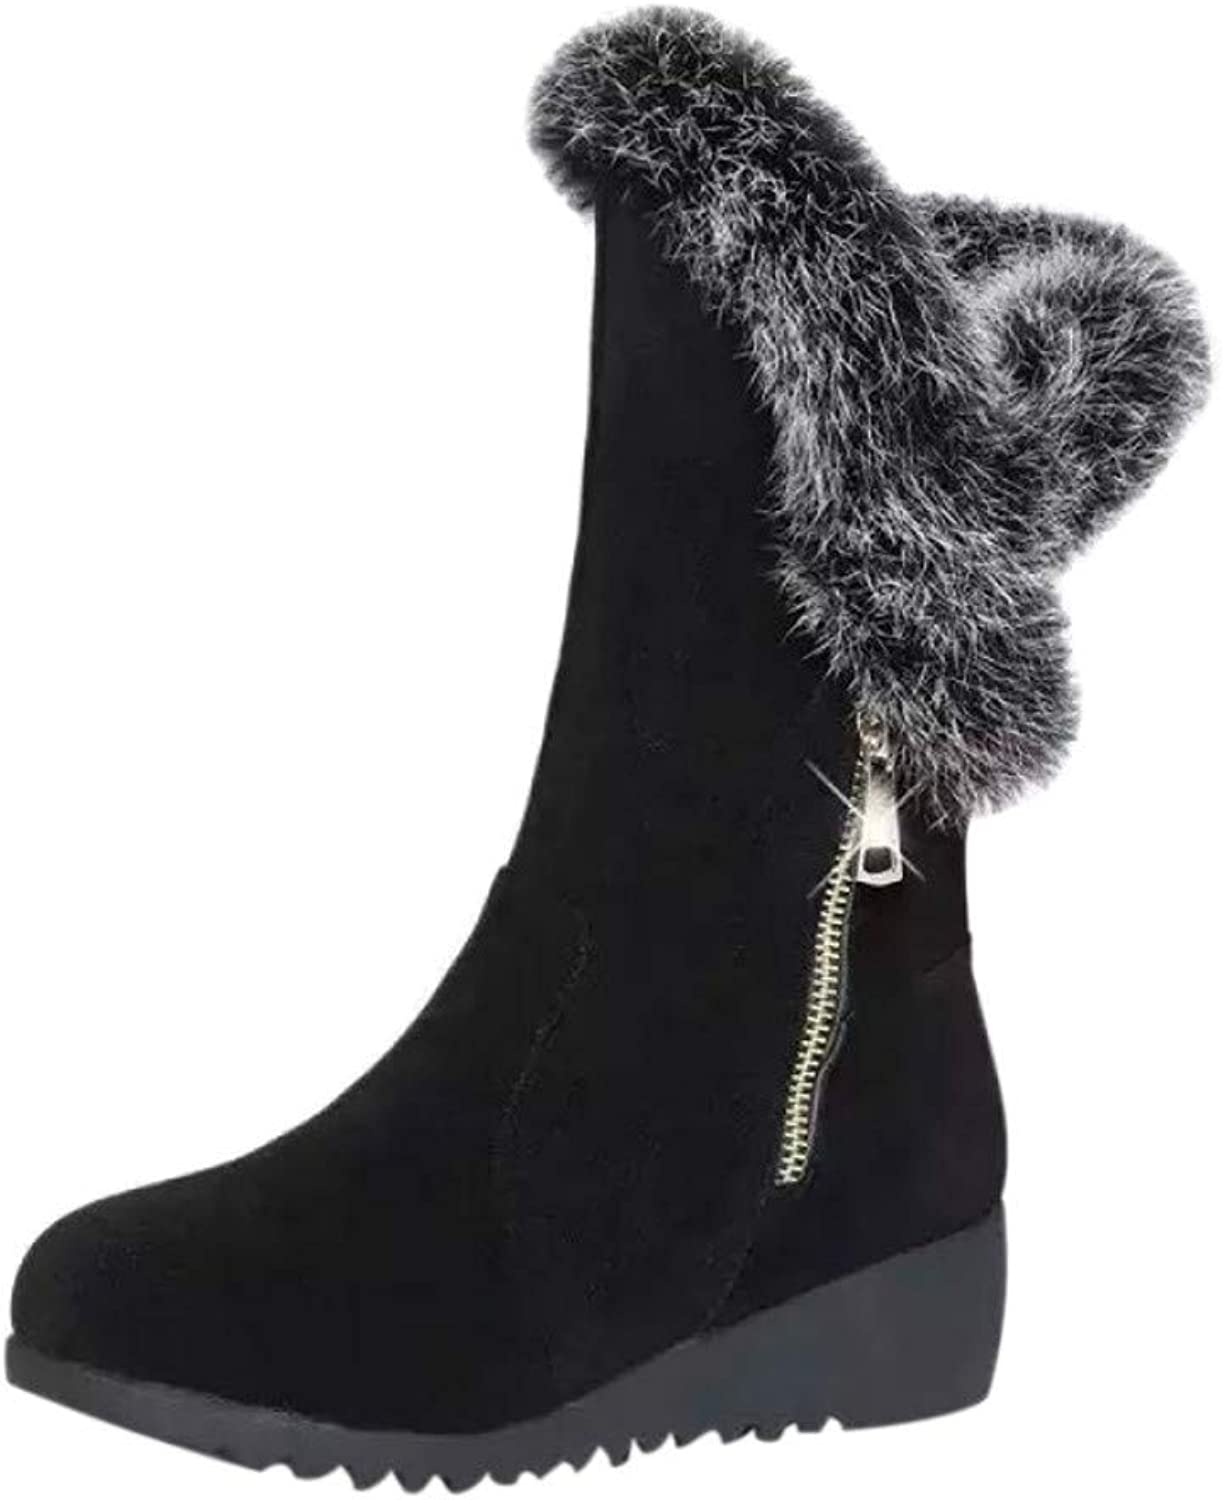 Wedges Heel Suede Black Ankle Boots Womens Plus Velvet Zipper Round Toe Winter